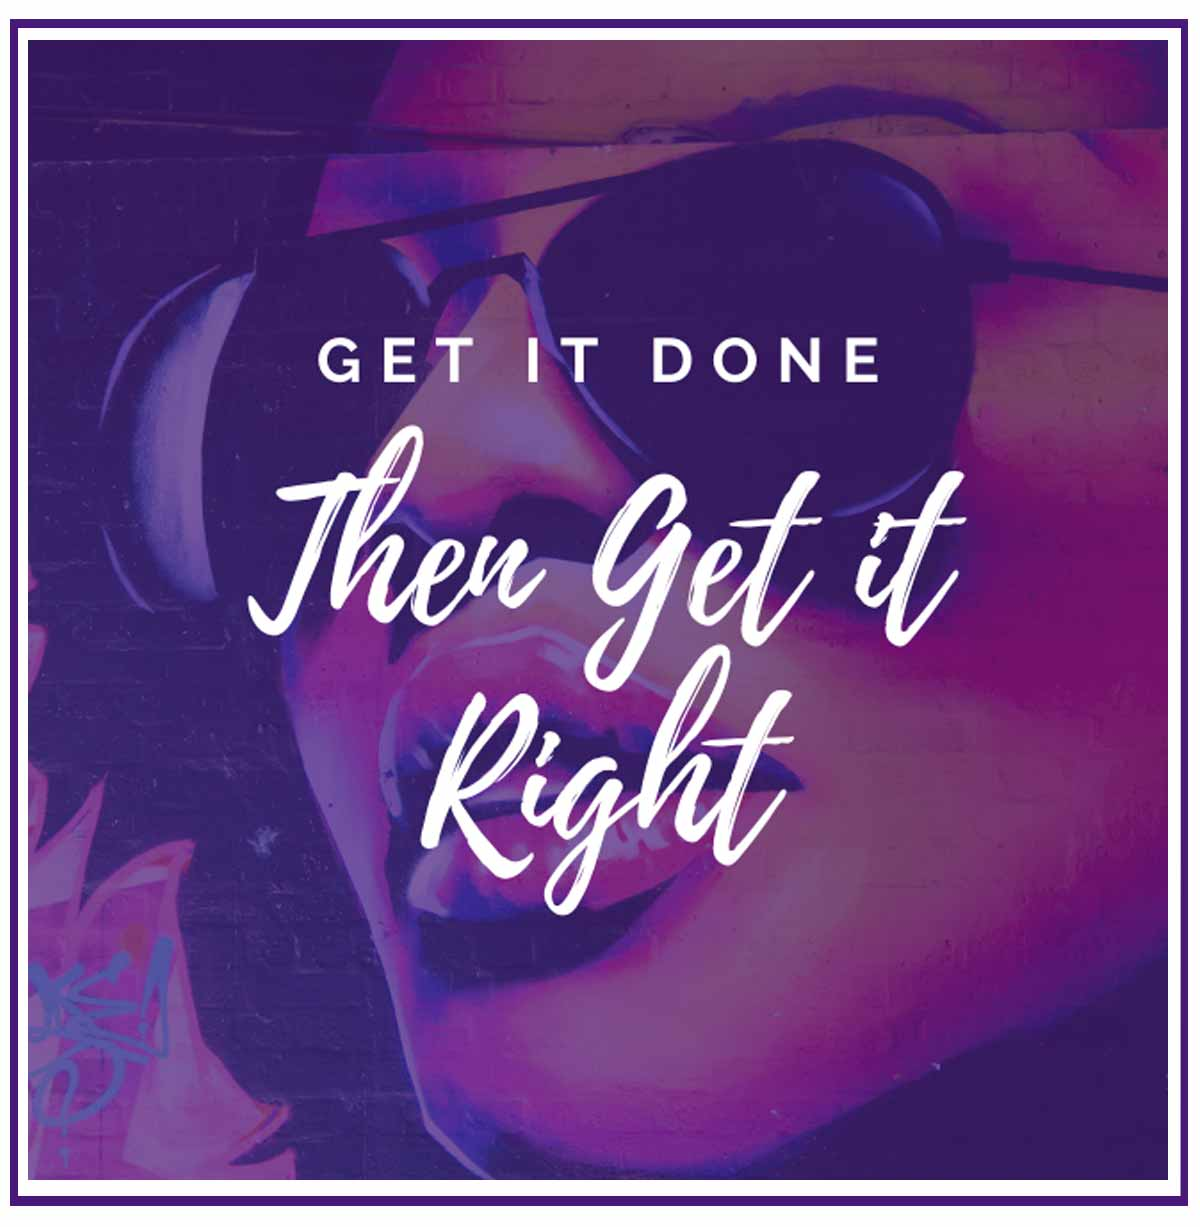 Get it Done, then get it right